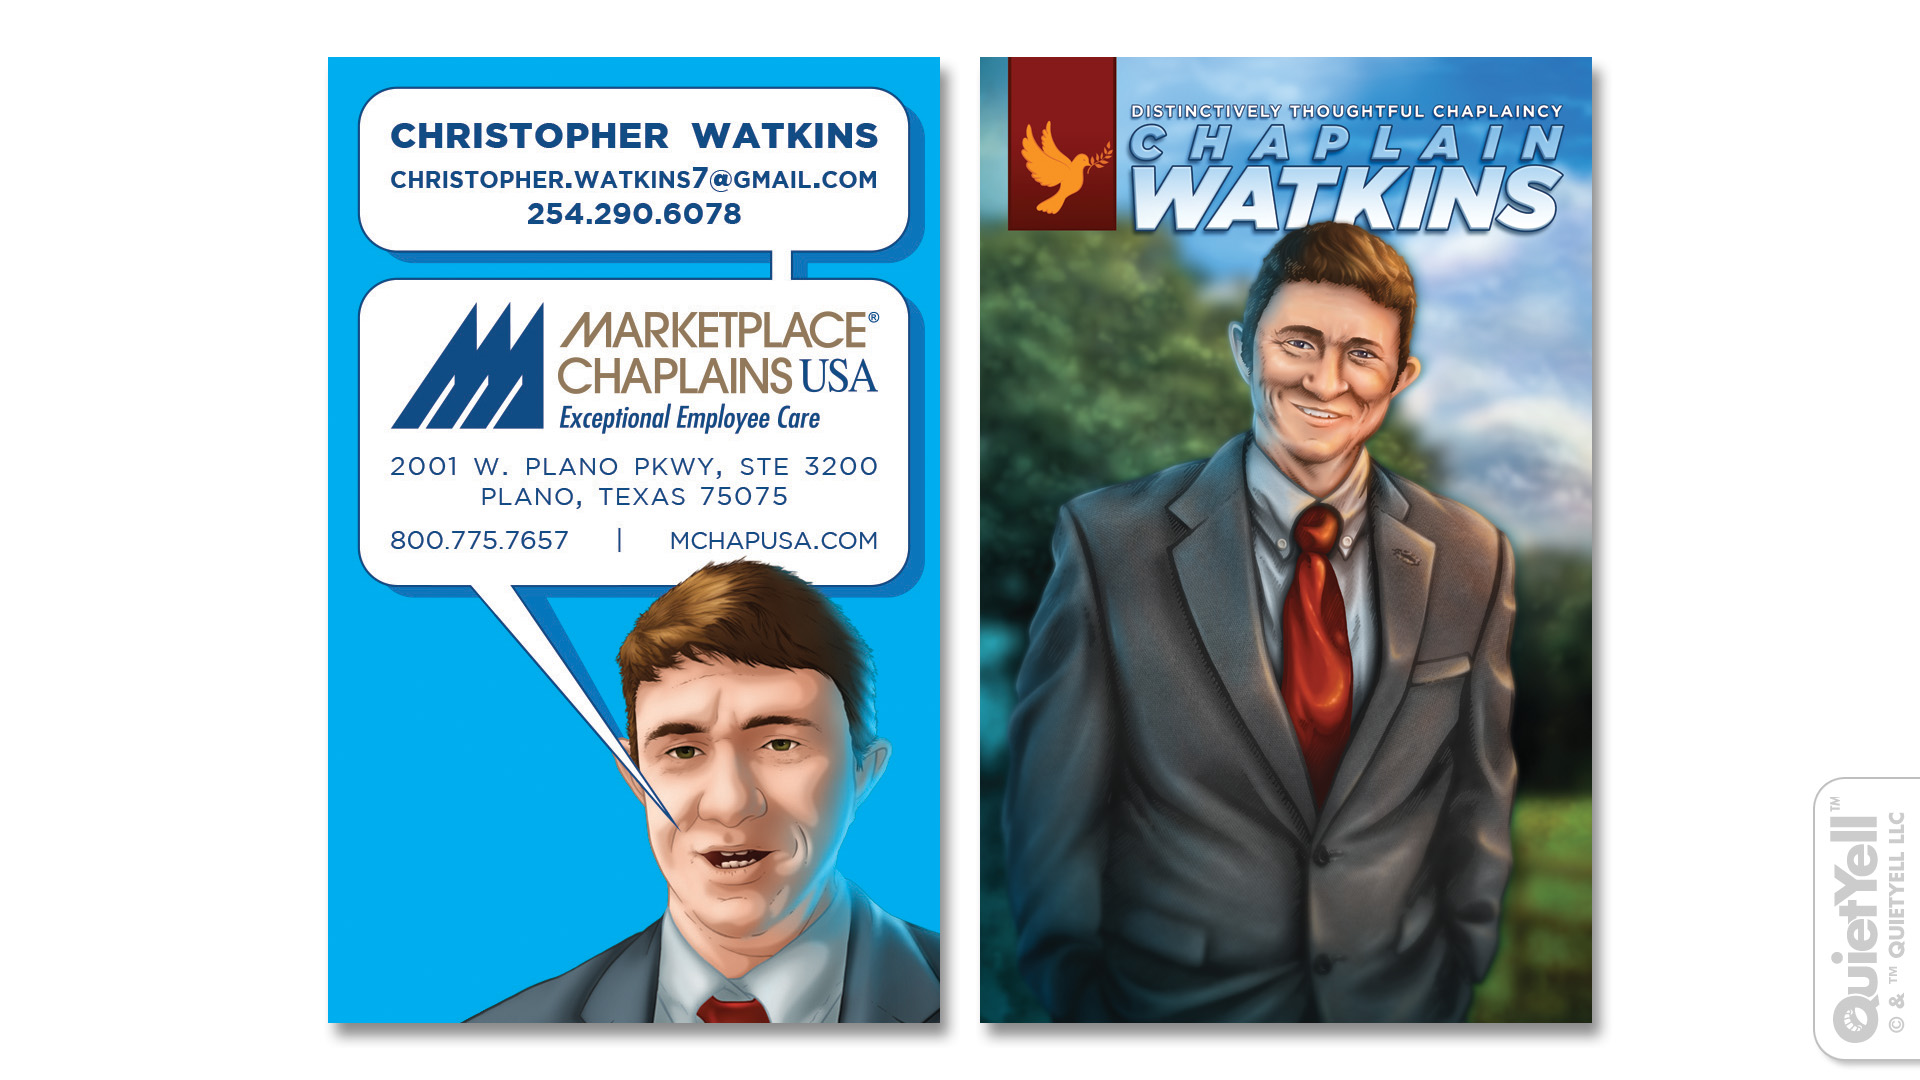 quietyell_illustration_full_chaplain-watkins-cards_01